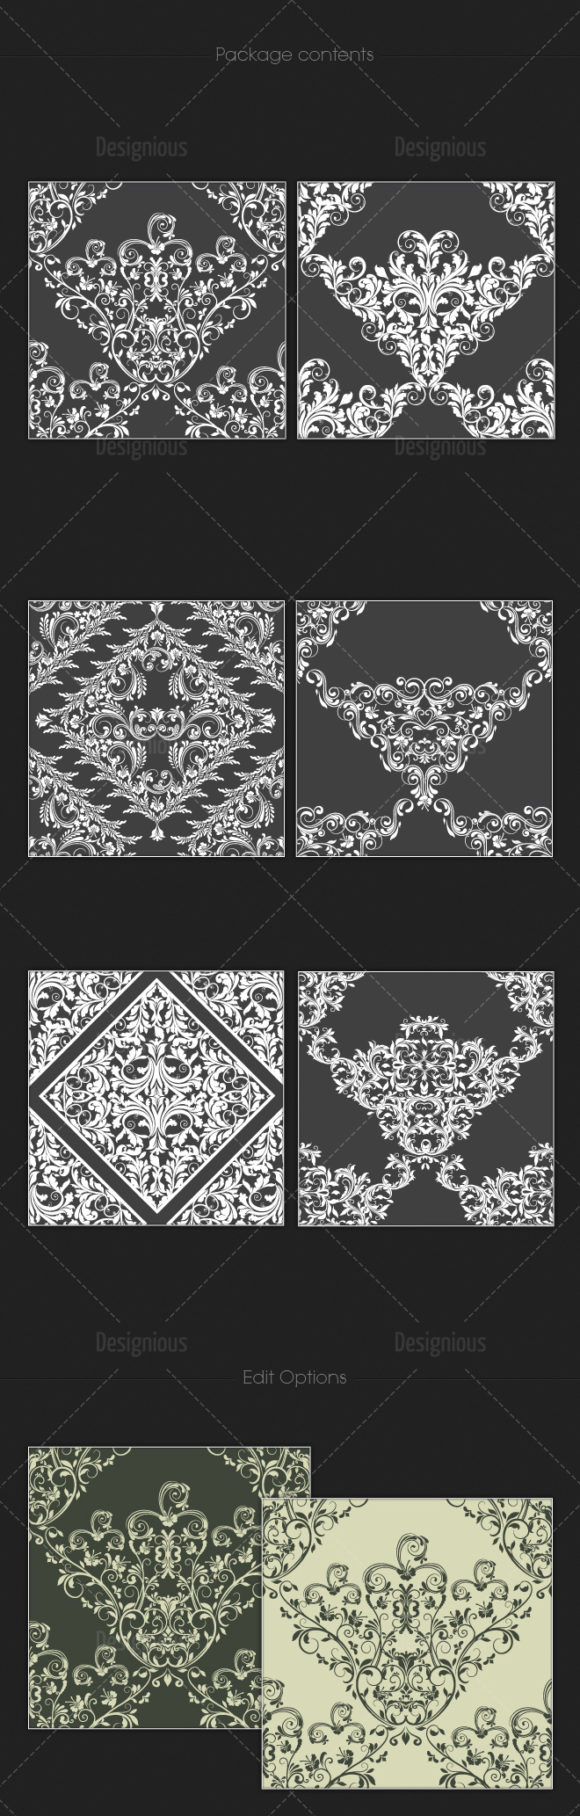 Seamless Patterns Vector Pack 104 Vector Patterns [tag]